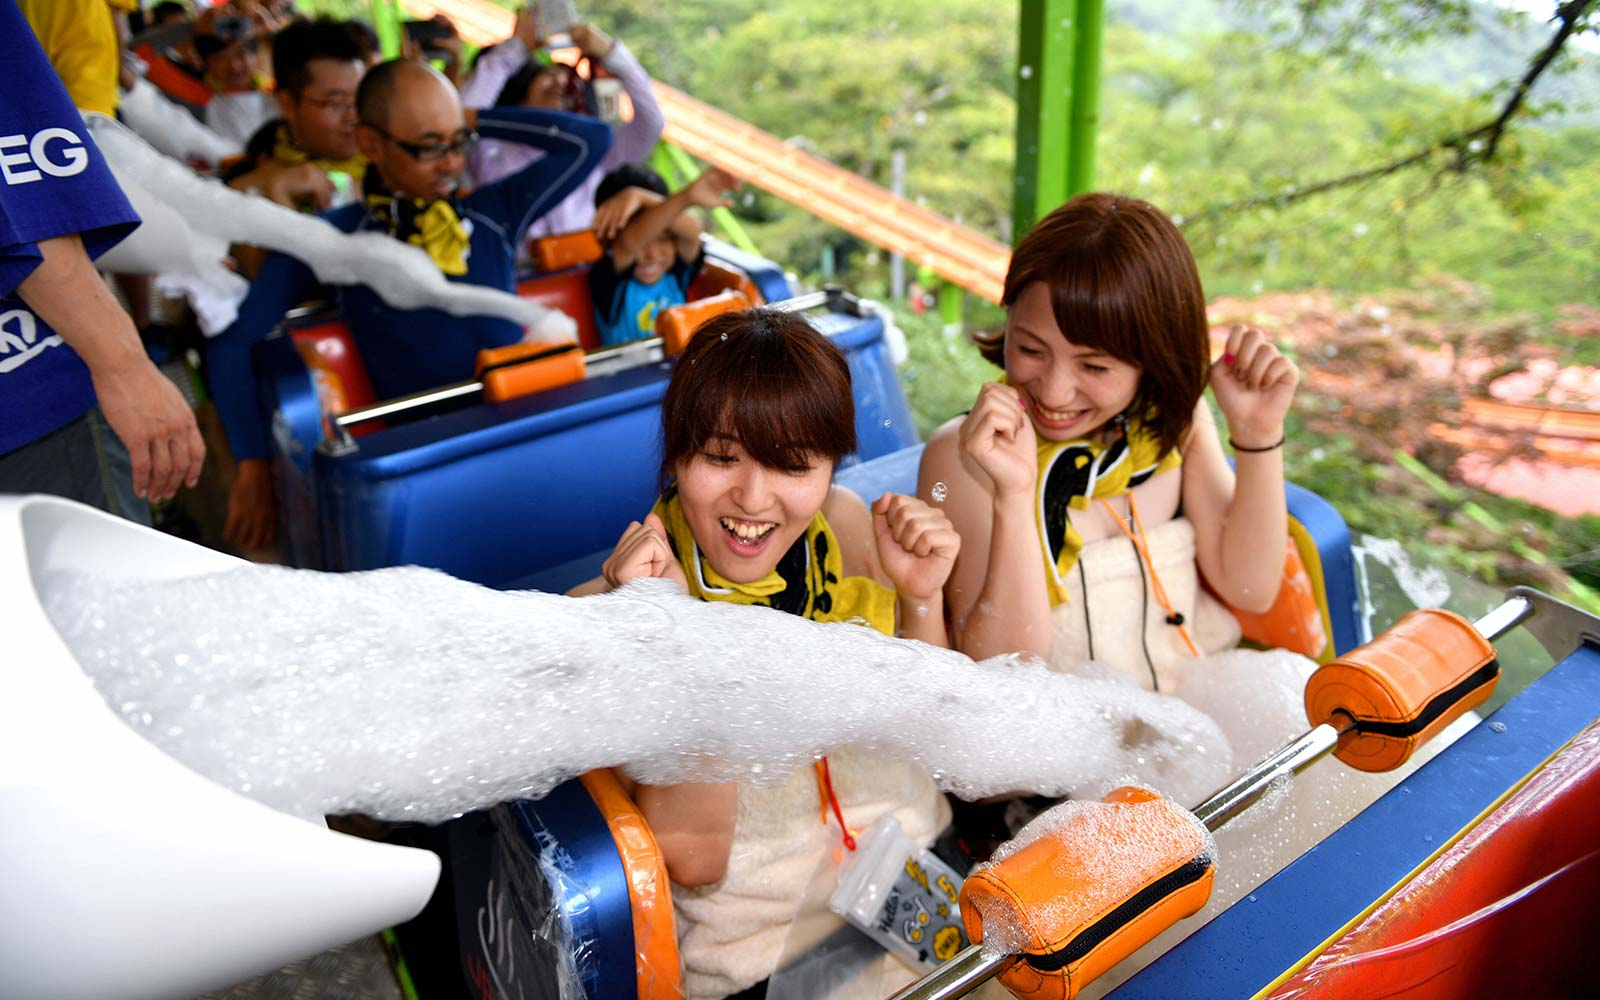 Japan's Hot Tub Theme Park Just Opened